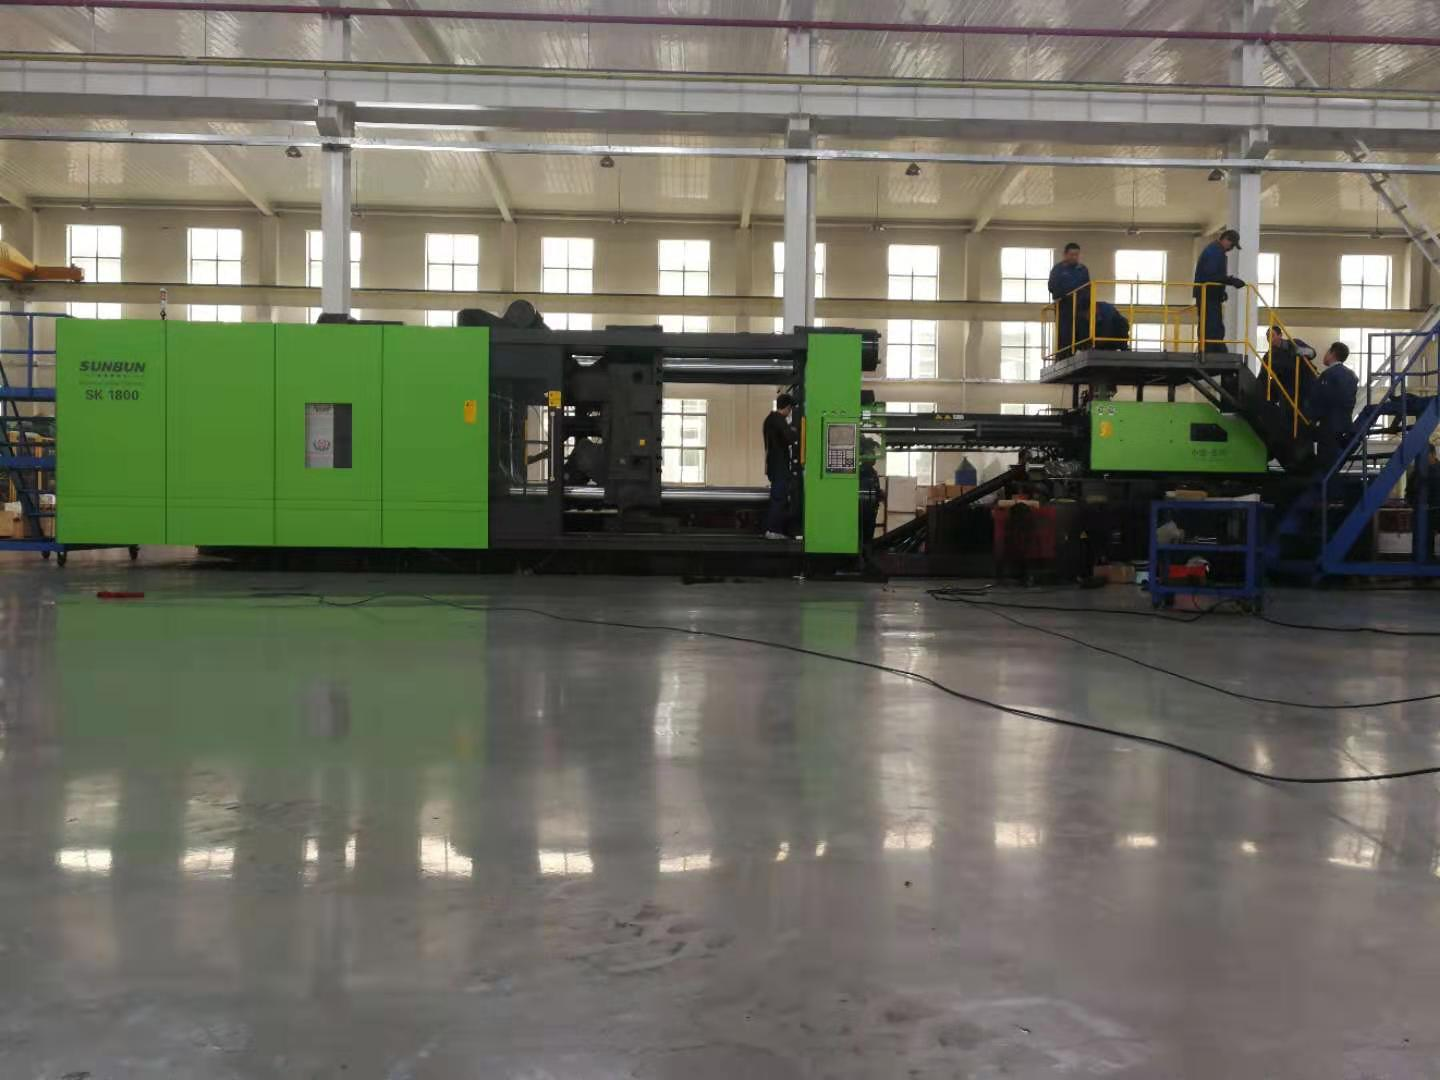 Sunbun China New and used horizontal type 2200T big material saving injection molding machine